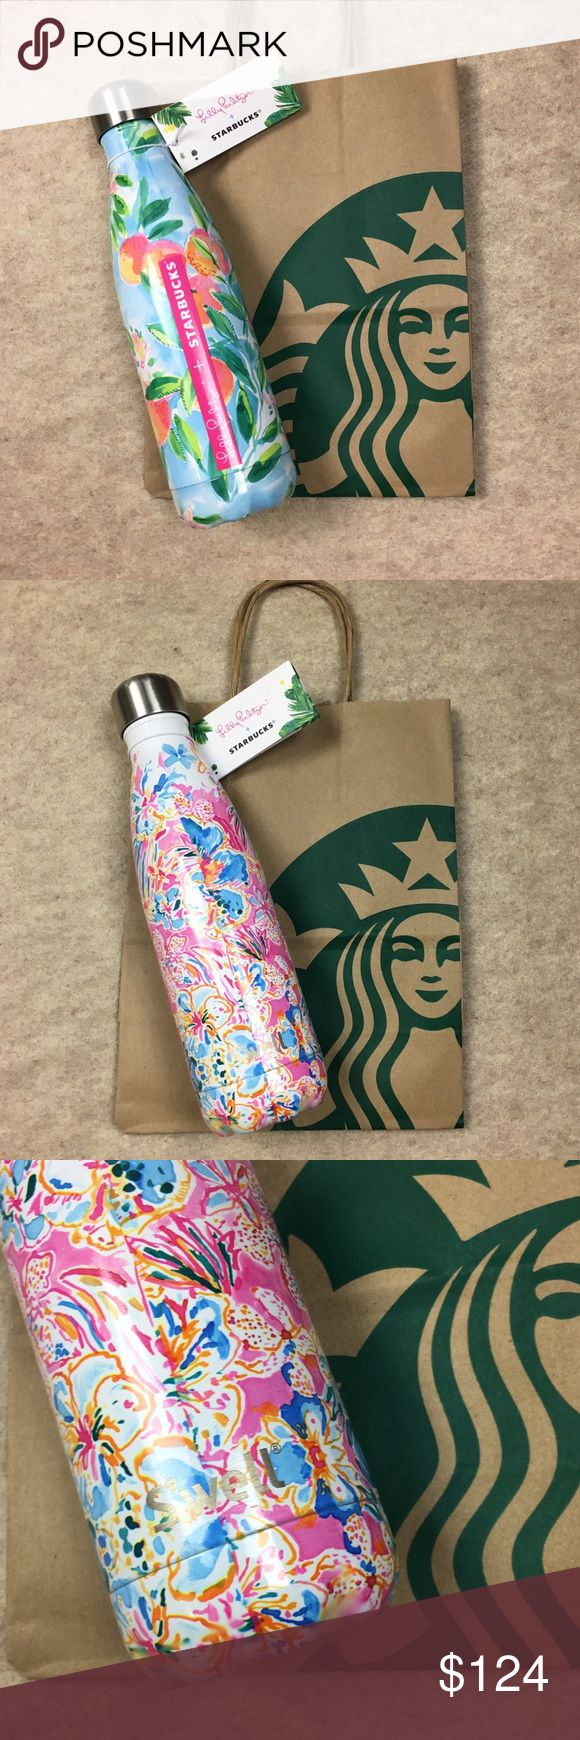 Lilly Pulitzer Starbucks Floral Swell Bottle Rare New with Tags Lilly Pulitzer + Starbucks Collaboration White Floral Print Swell Bottle 17 oz Limited Edition Rare Lilly Pulitzer Other